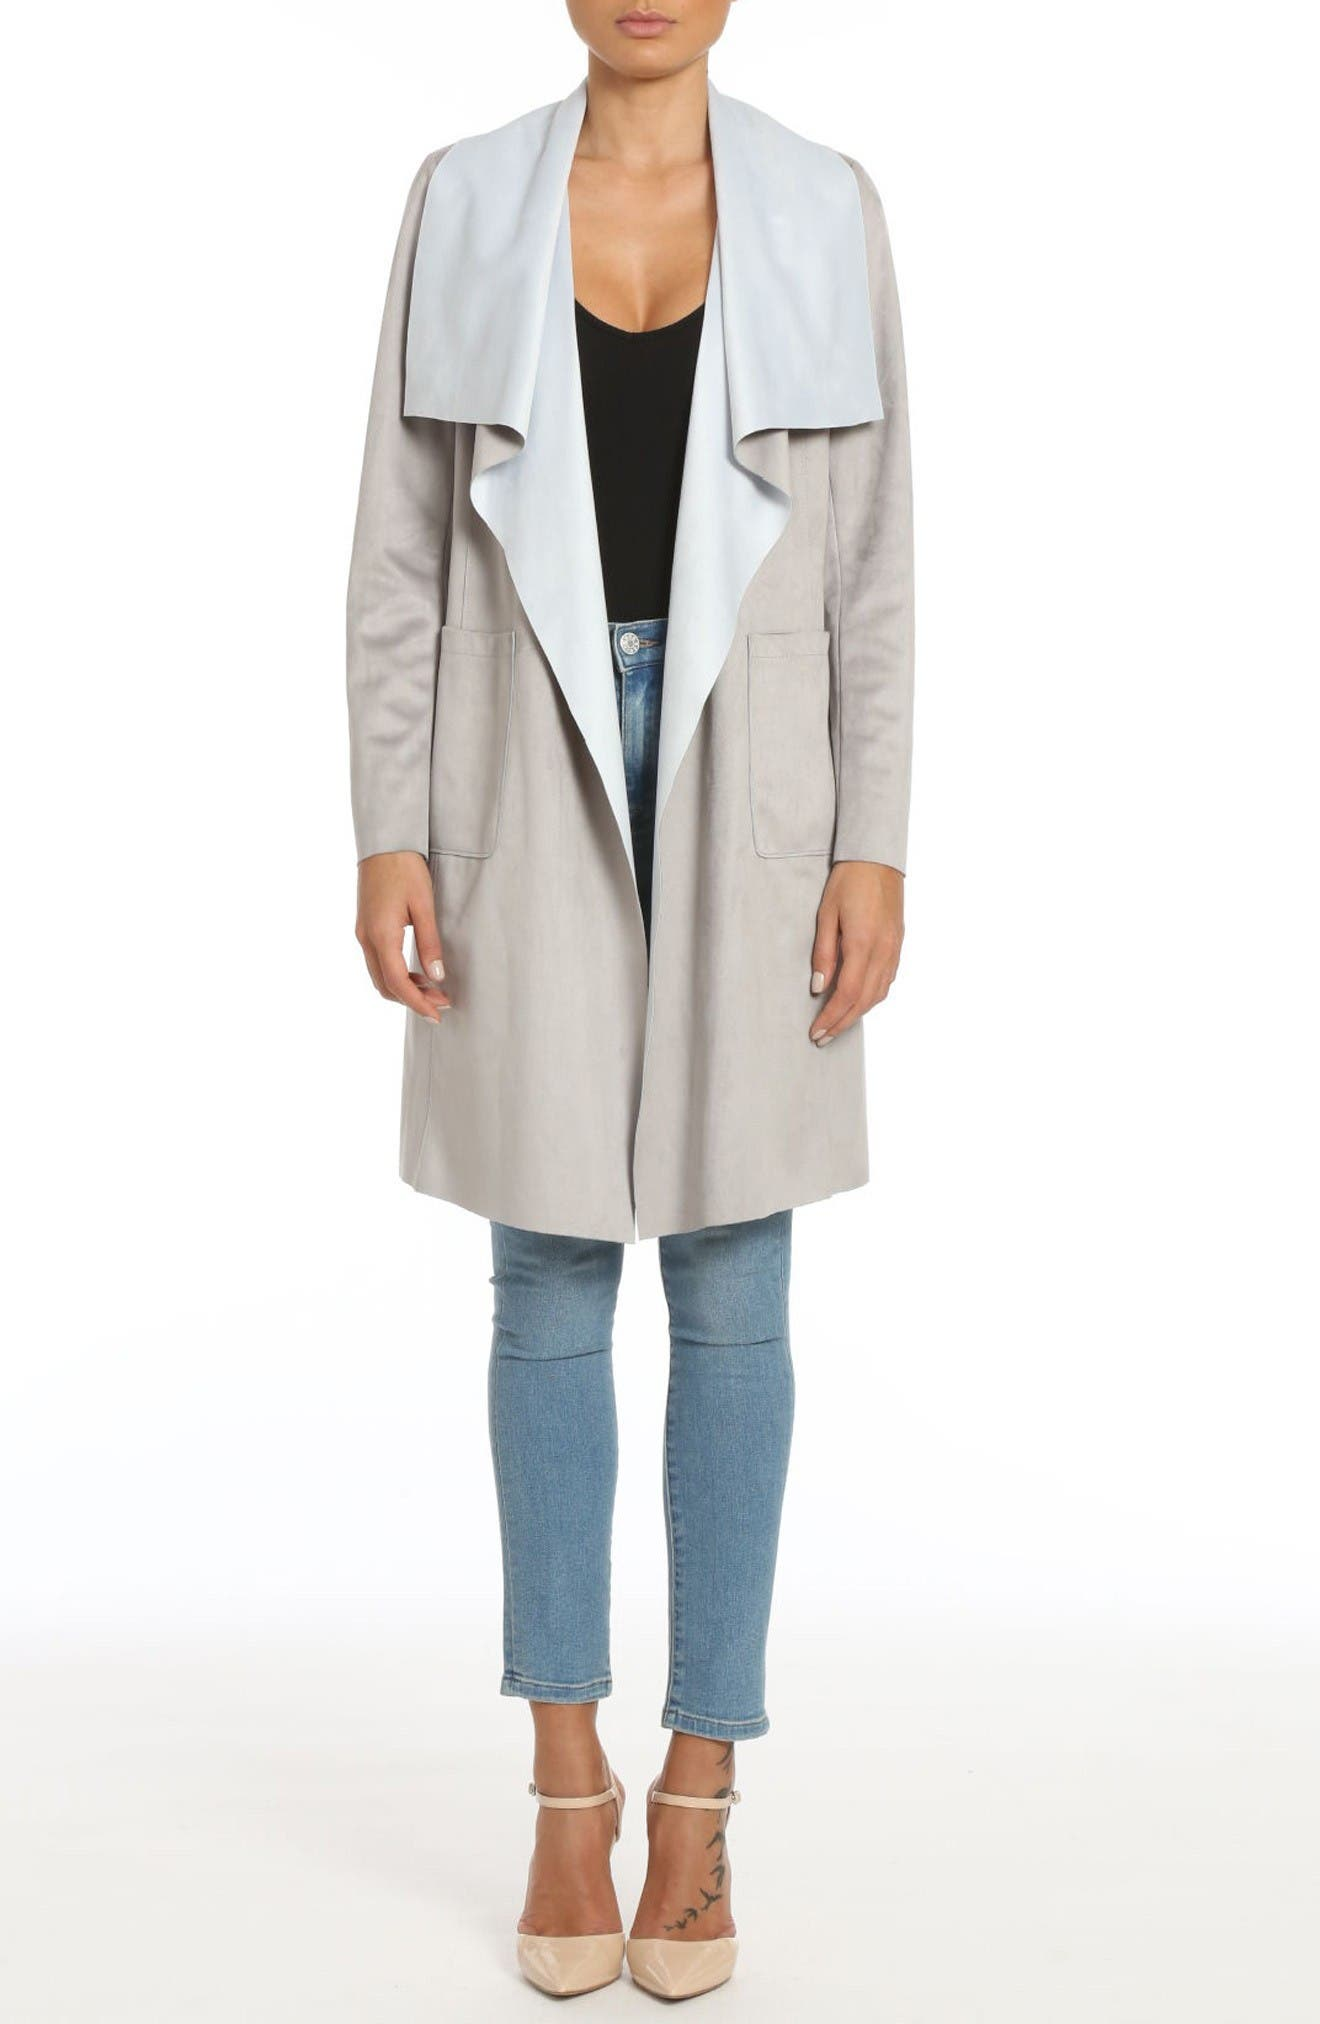 Main Image - Badgley Mischka Colorblock Faux Suede Draped Coat